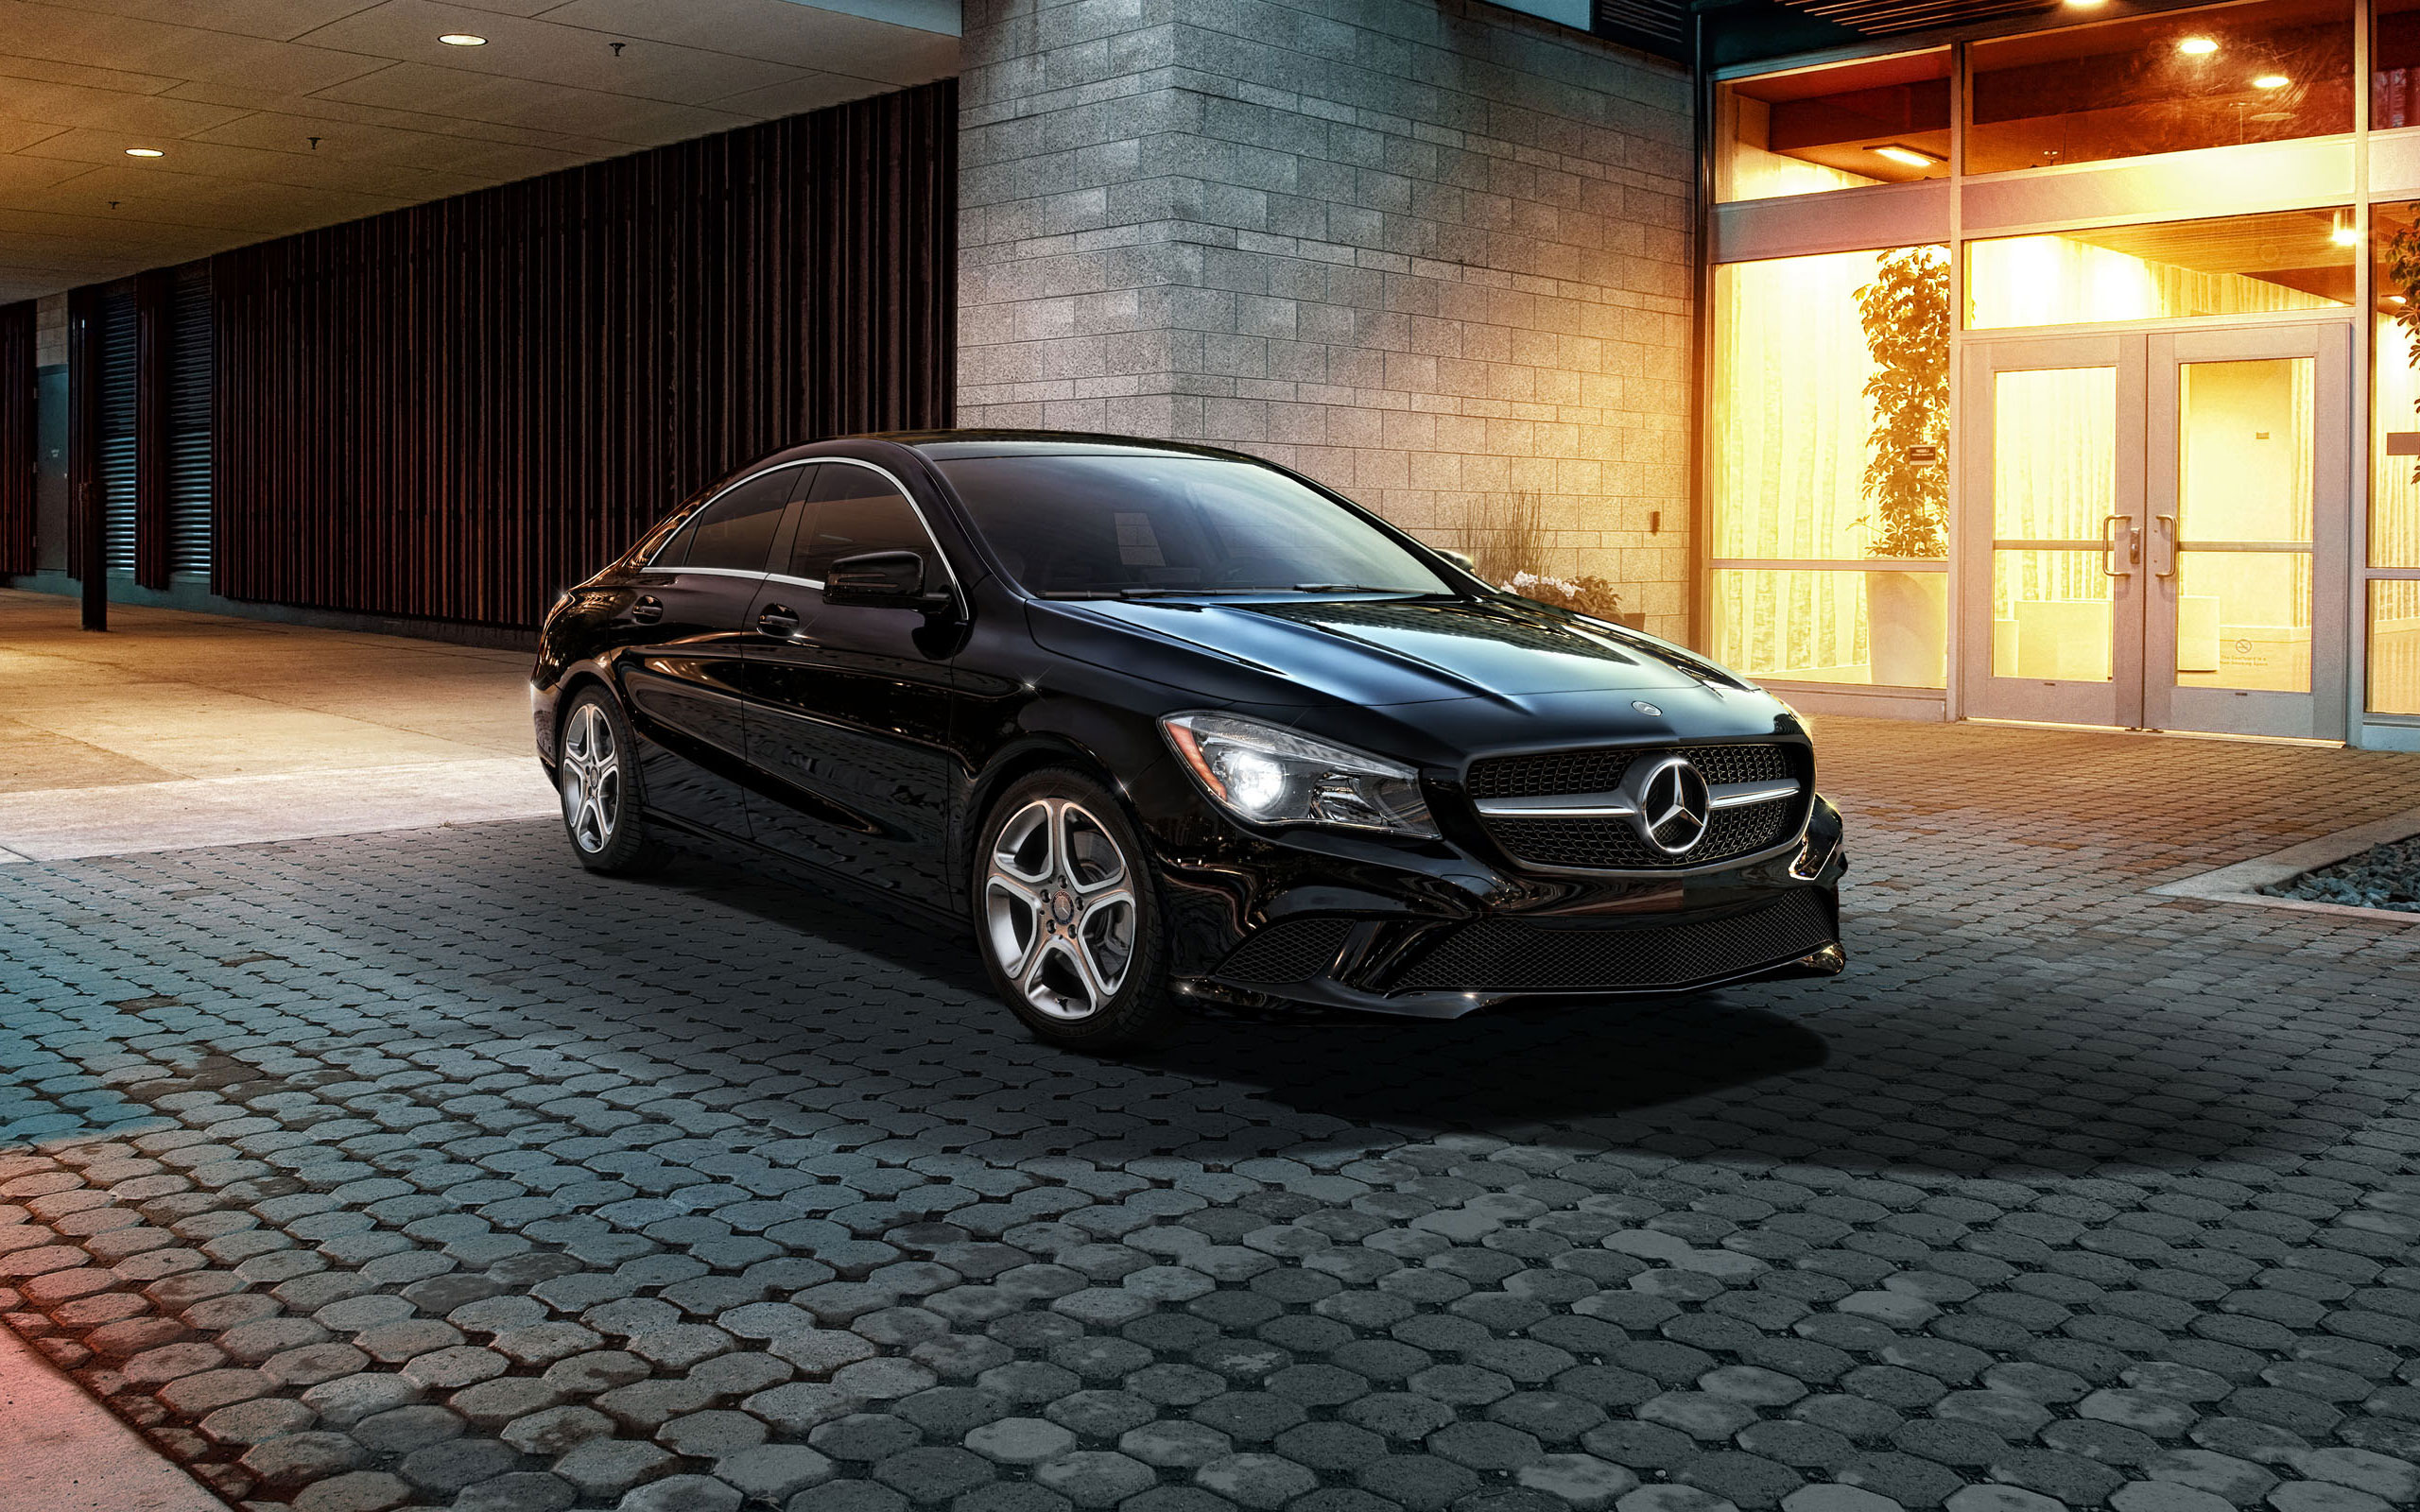 2014 Mercedes CLA250 in Night Black with 17-inch 5-spoke wheels